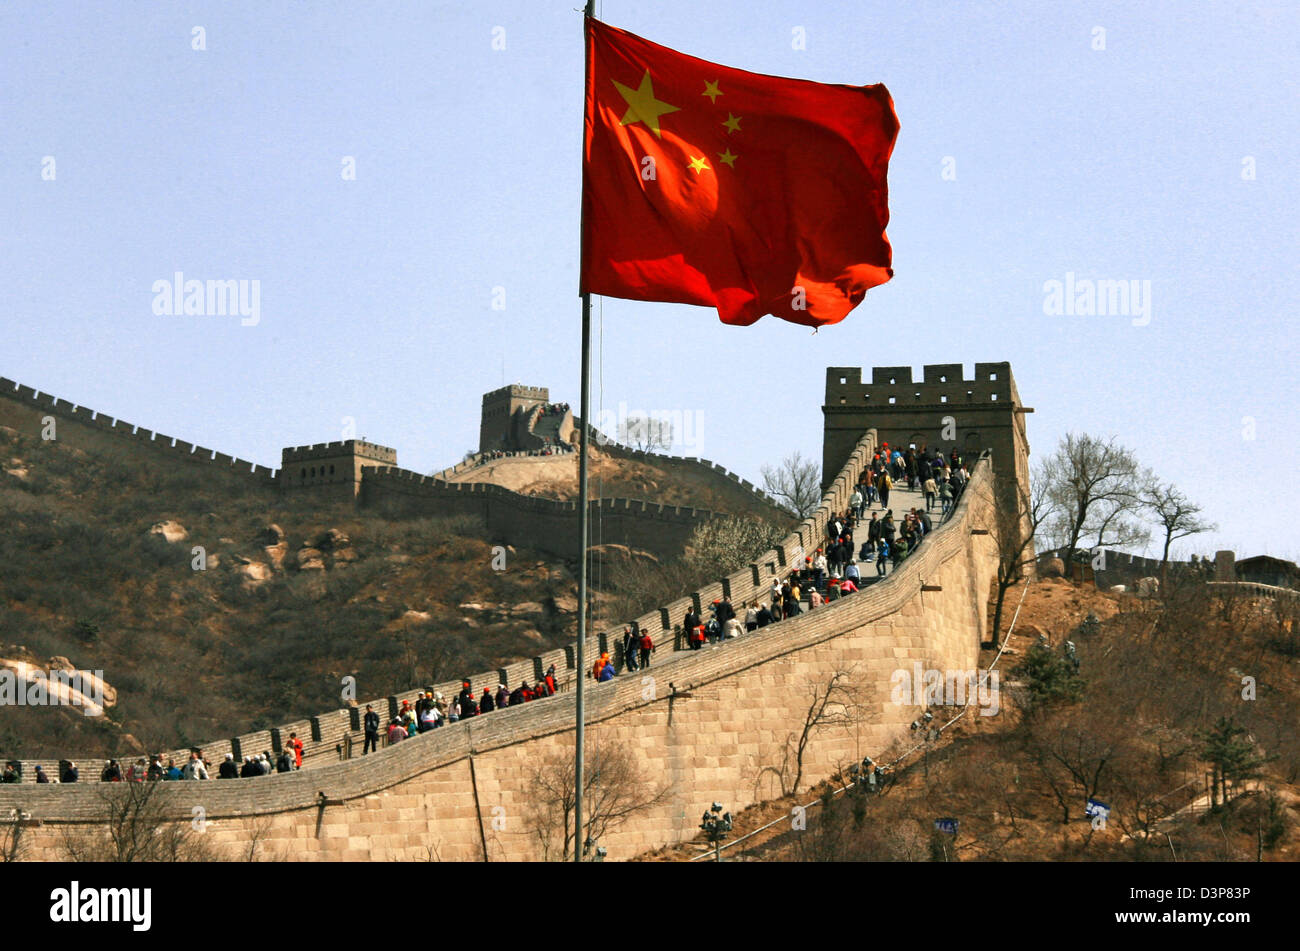 (dpa file) The national flag of China waves above the Great Wall near the capital Beijing, China, Tuesday 11 April - Stock Image